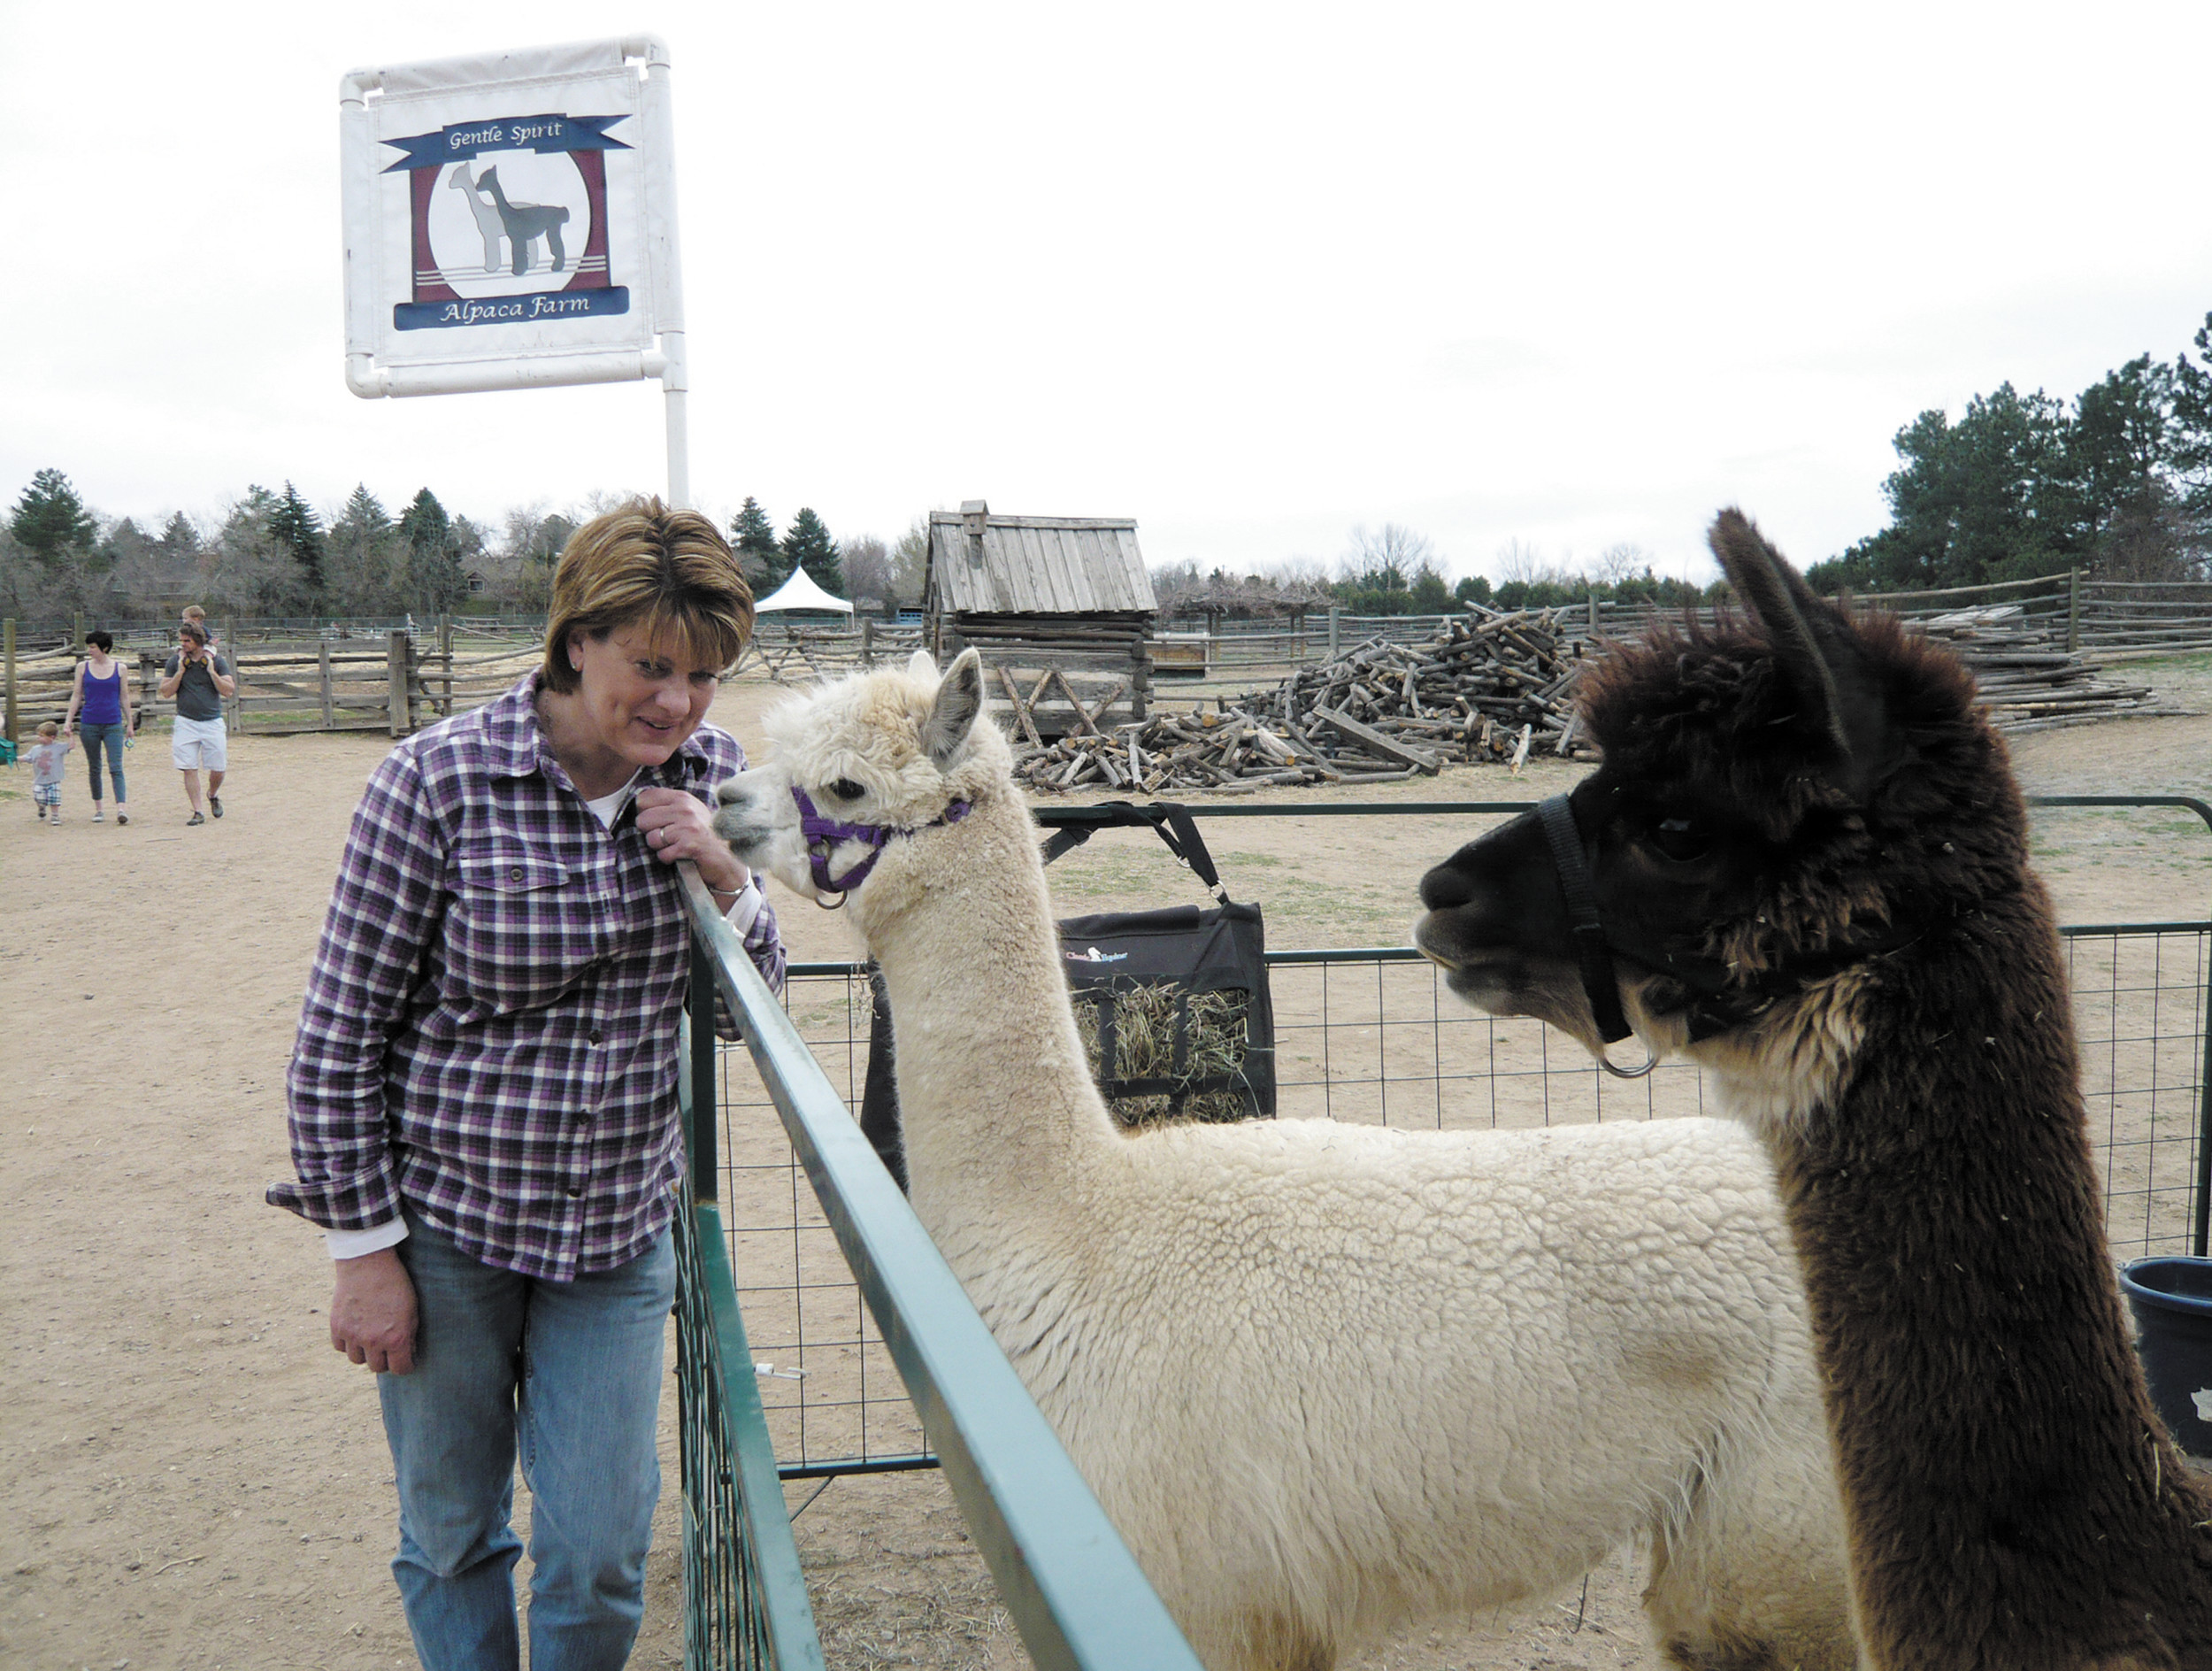 Nancy Simmons Holloway of Gentle Spirit Alpaca Farms in Wiggins brought an alpaca and a paco-vicuna to the Fiber Festival April 12.